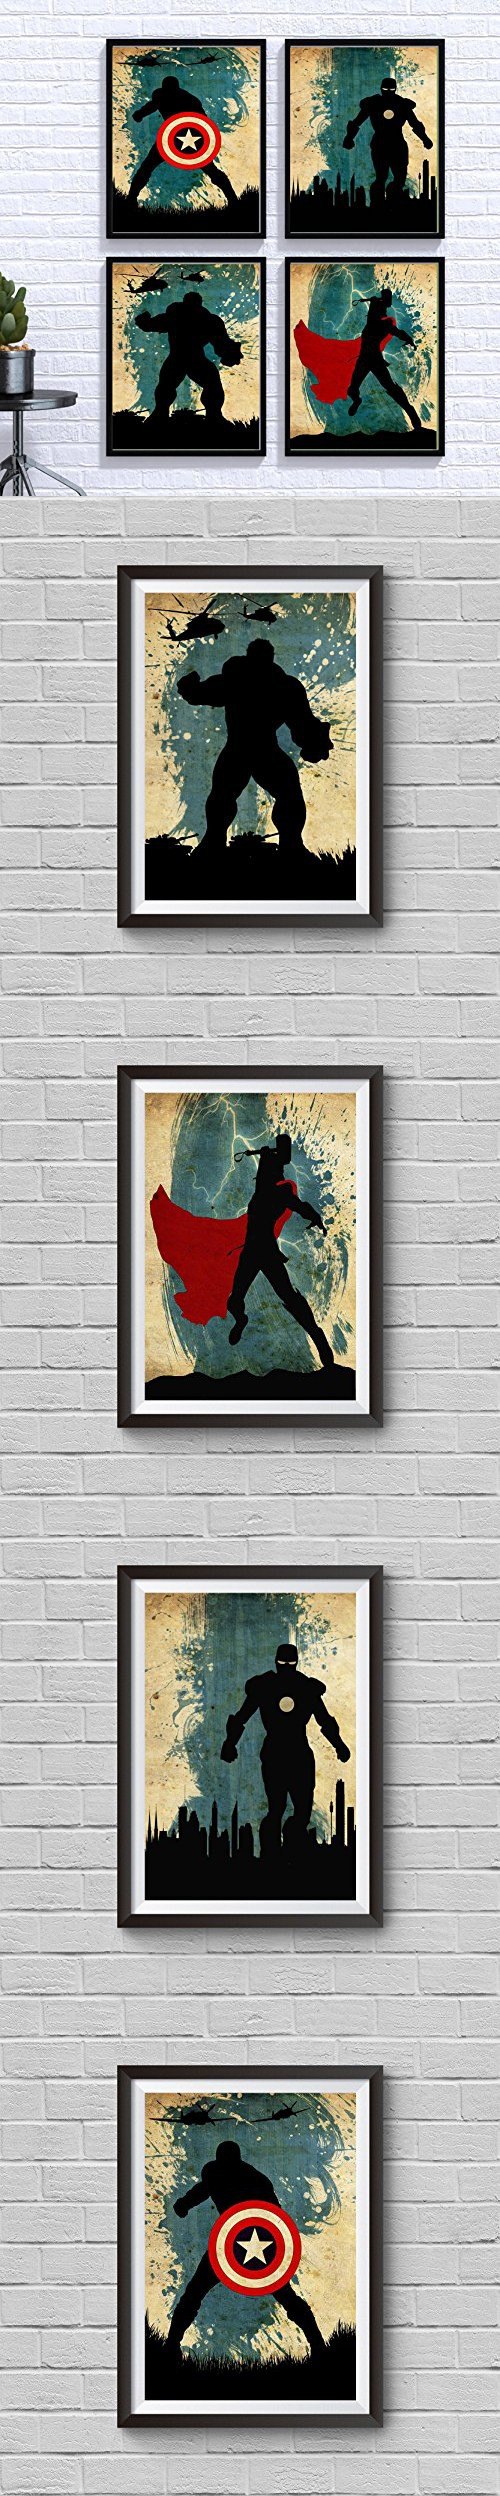 Avengers Poster Set Vintage Poster Marvel Movie Print Minimalist Avengers  Poster Artwork Wall Art Home Decor